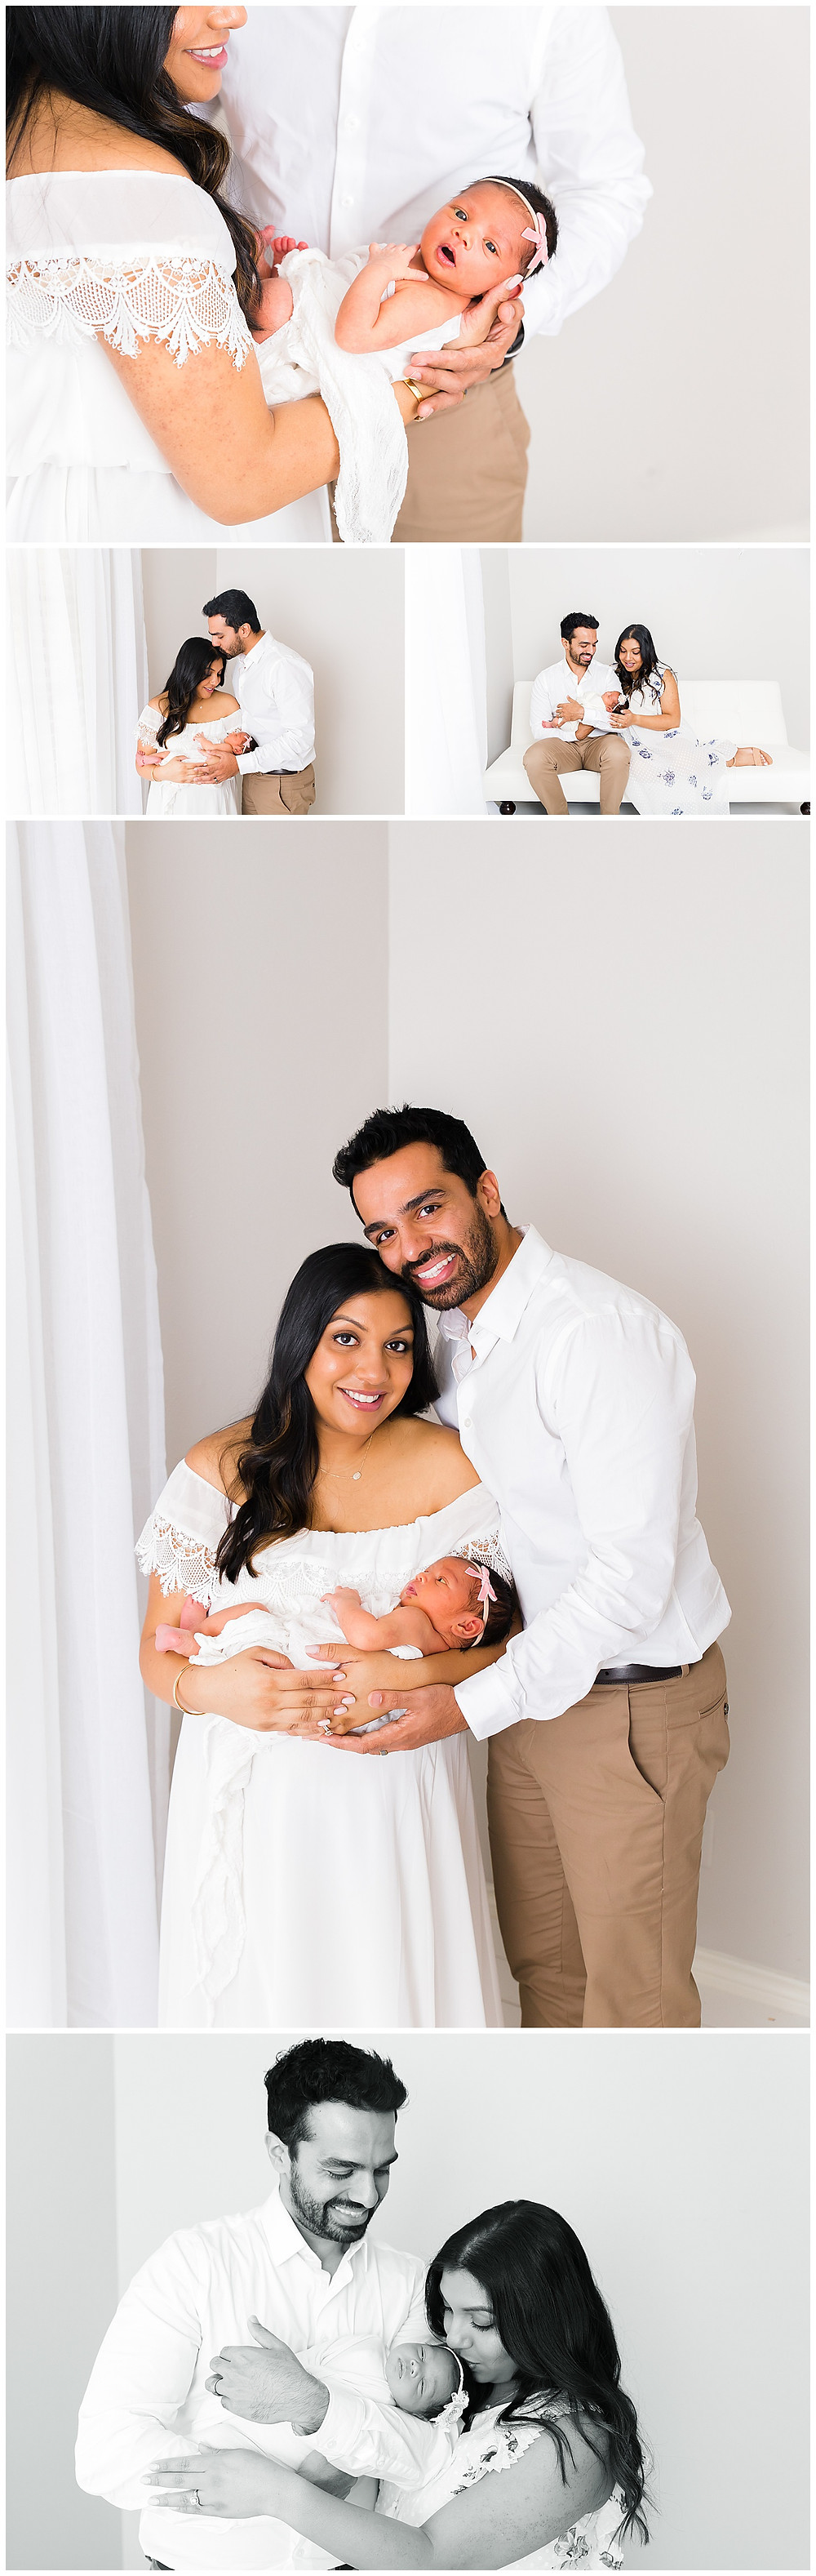 family photography in Dallas, TX